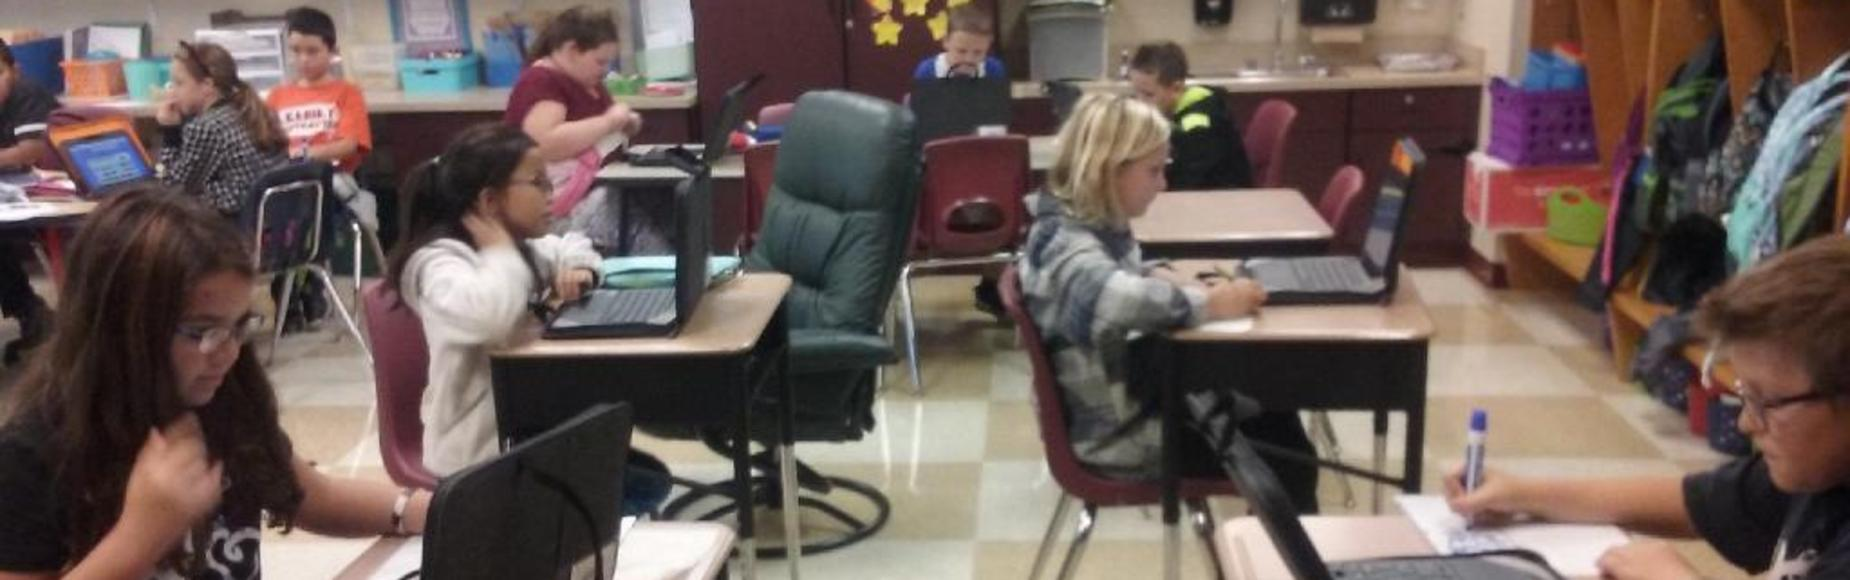 Students on computers picture